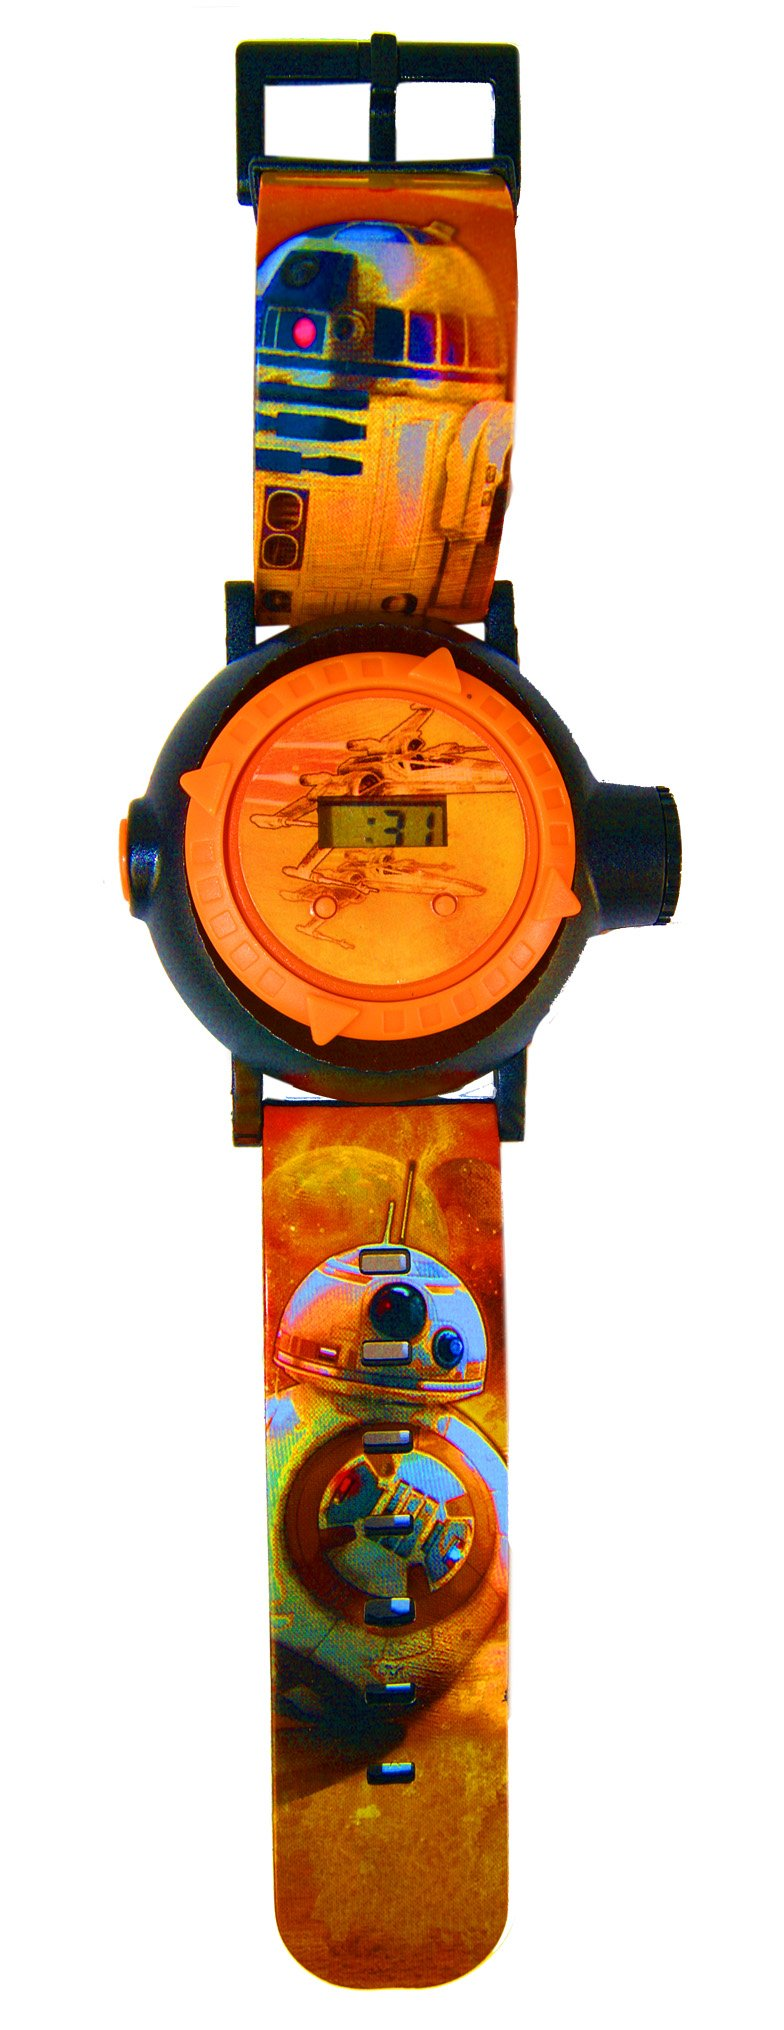 Star, Wars Watch With Projector, Children Digital Watch,Officially Licensed,Projection Watch